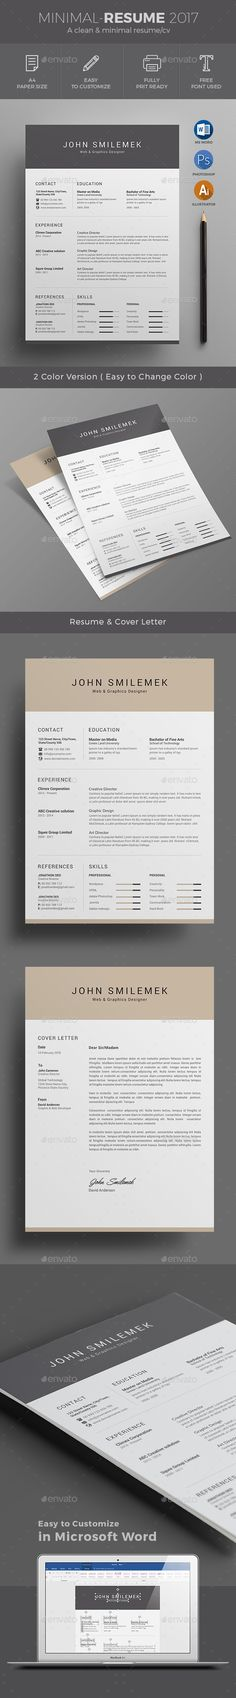 Resume Word Resume template download, Modern resume template and - microsoft word resume template download